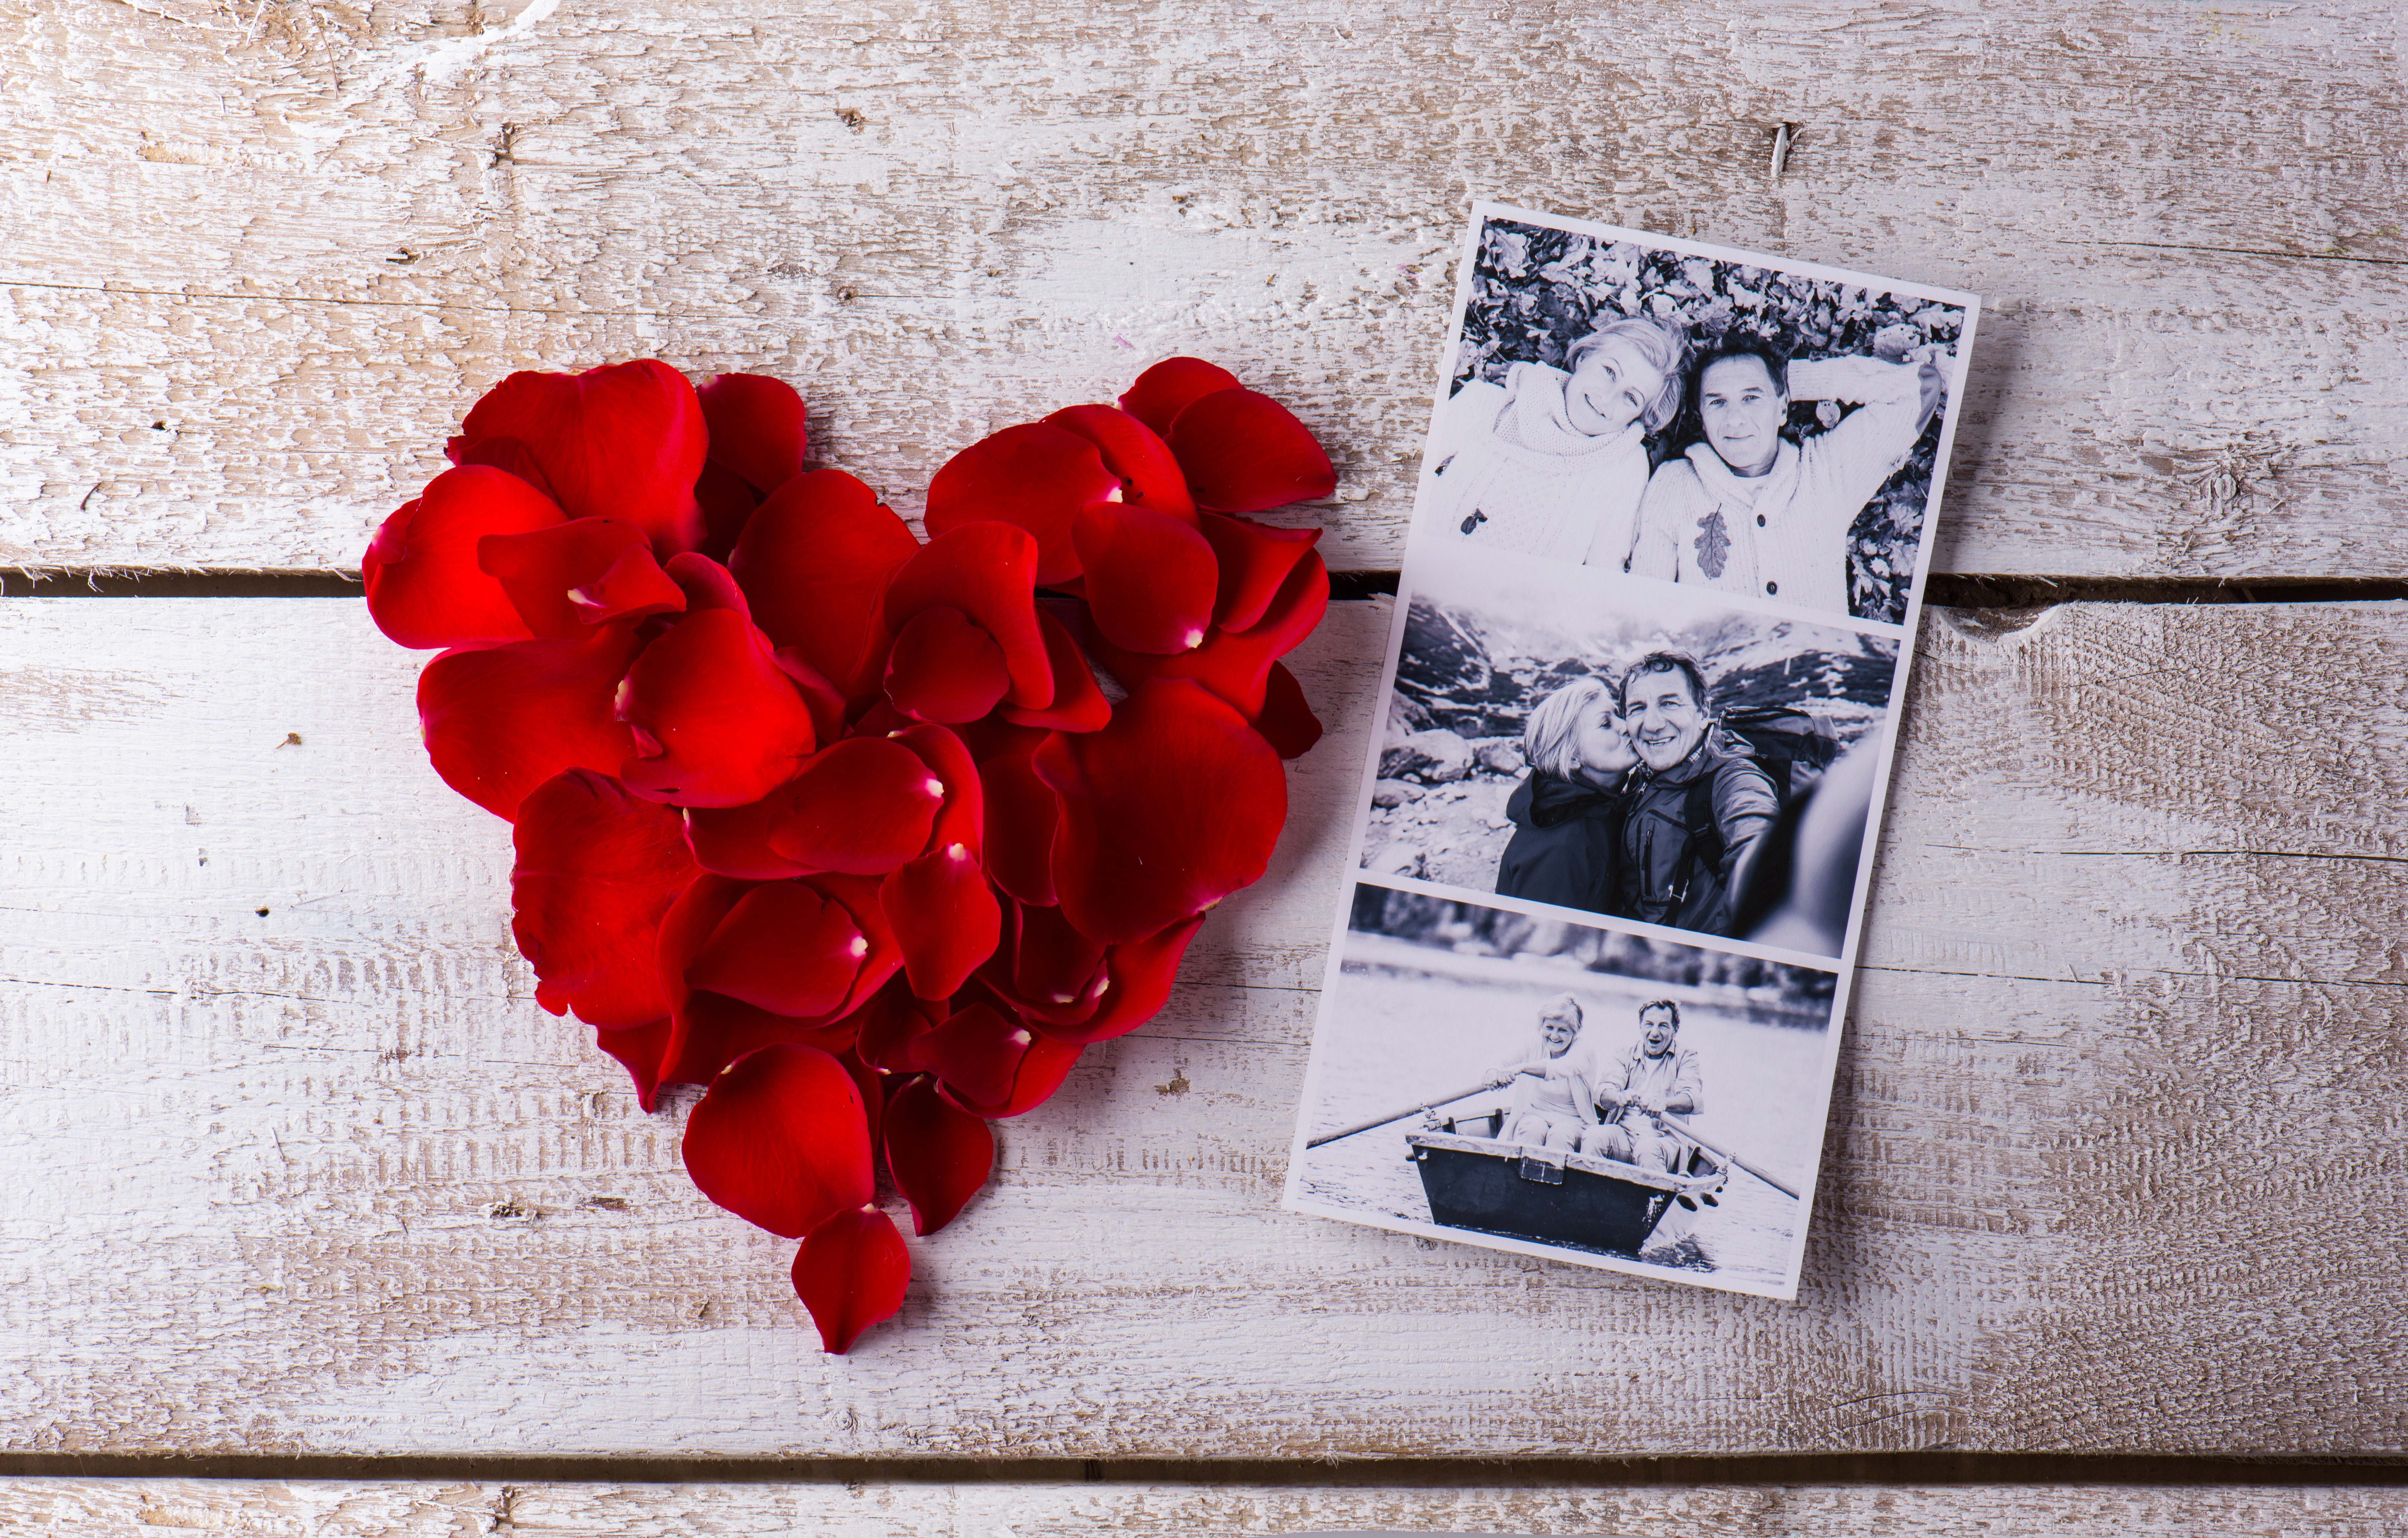 graphicstock-black-and-white-photos-of-a-romantic-senior-couple-laid-on-white-wooden-table-red-rose-petal-heart-valentines-day-composition_HuvCG4Sz-